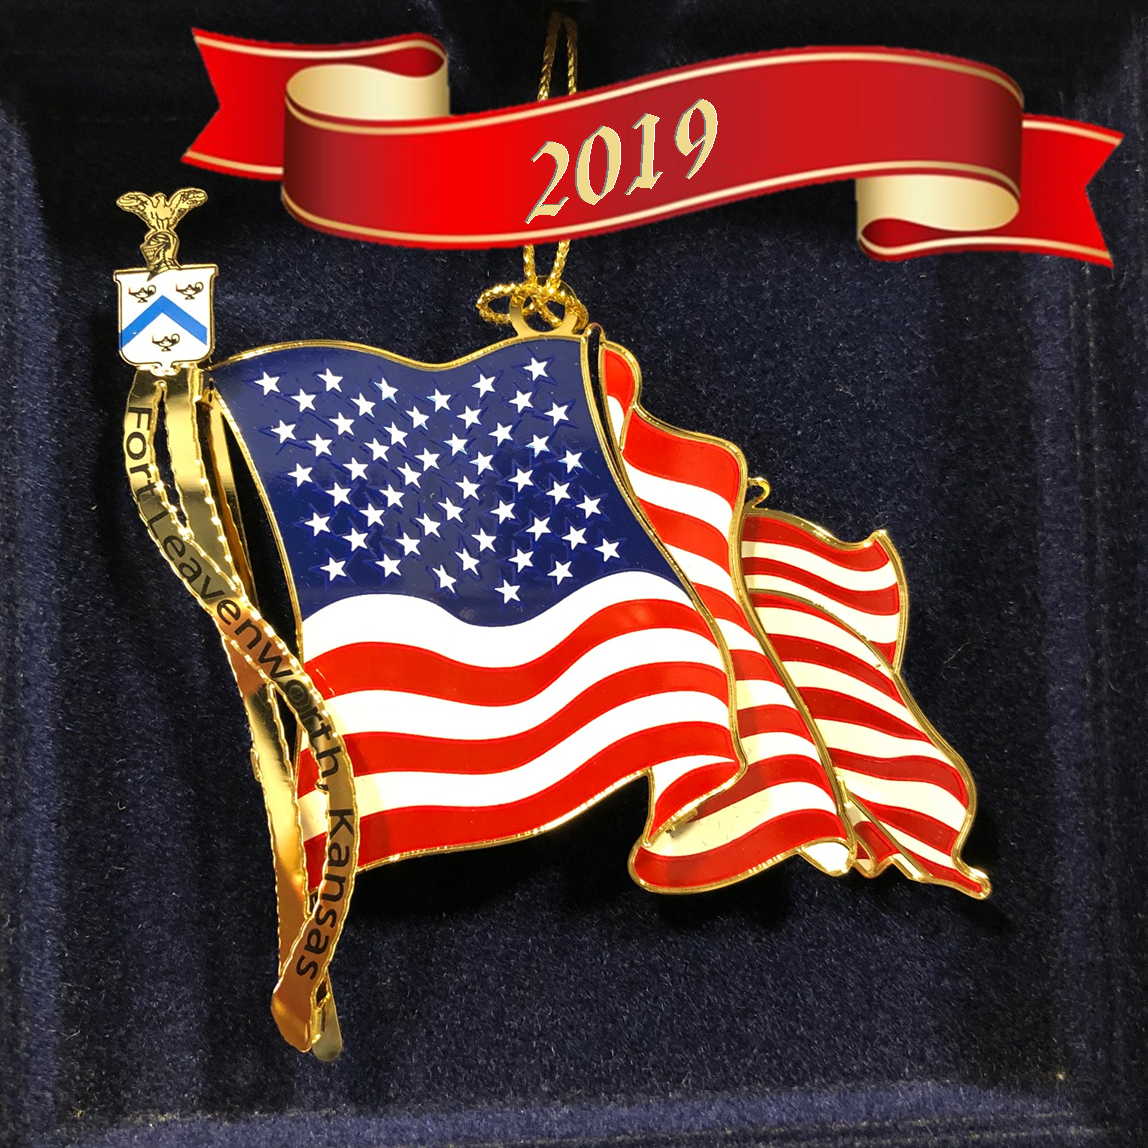 CGSC Foundation unveils 2019 ornament